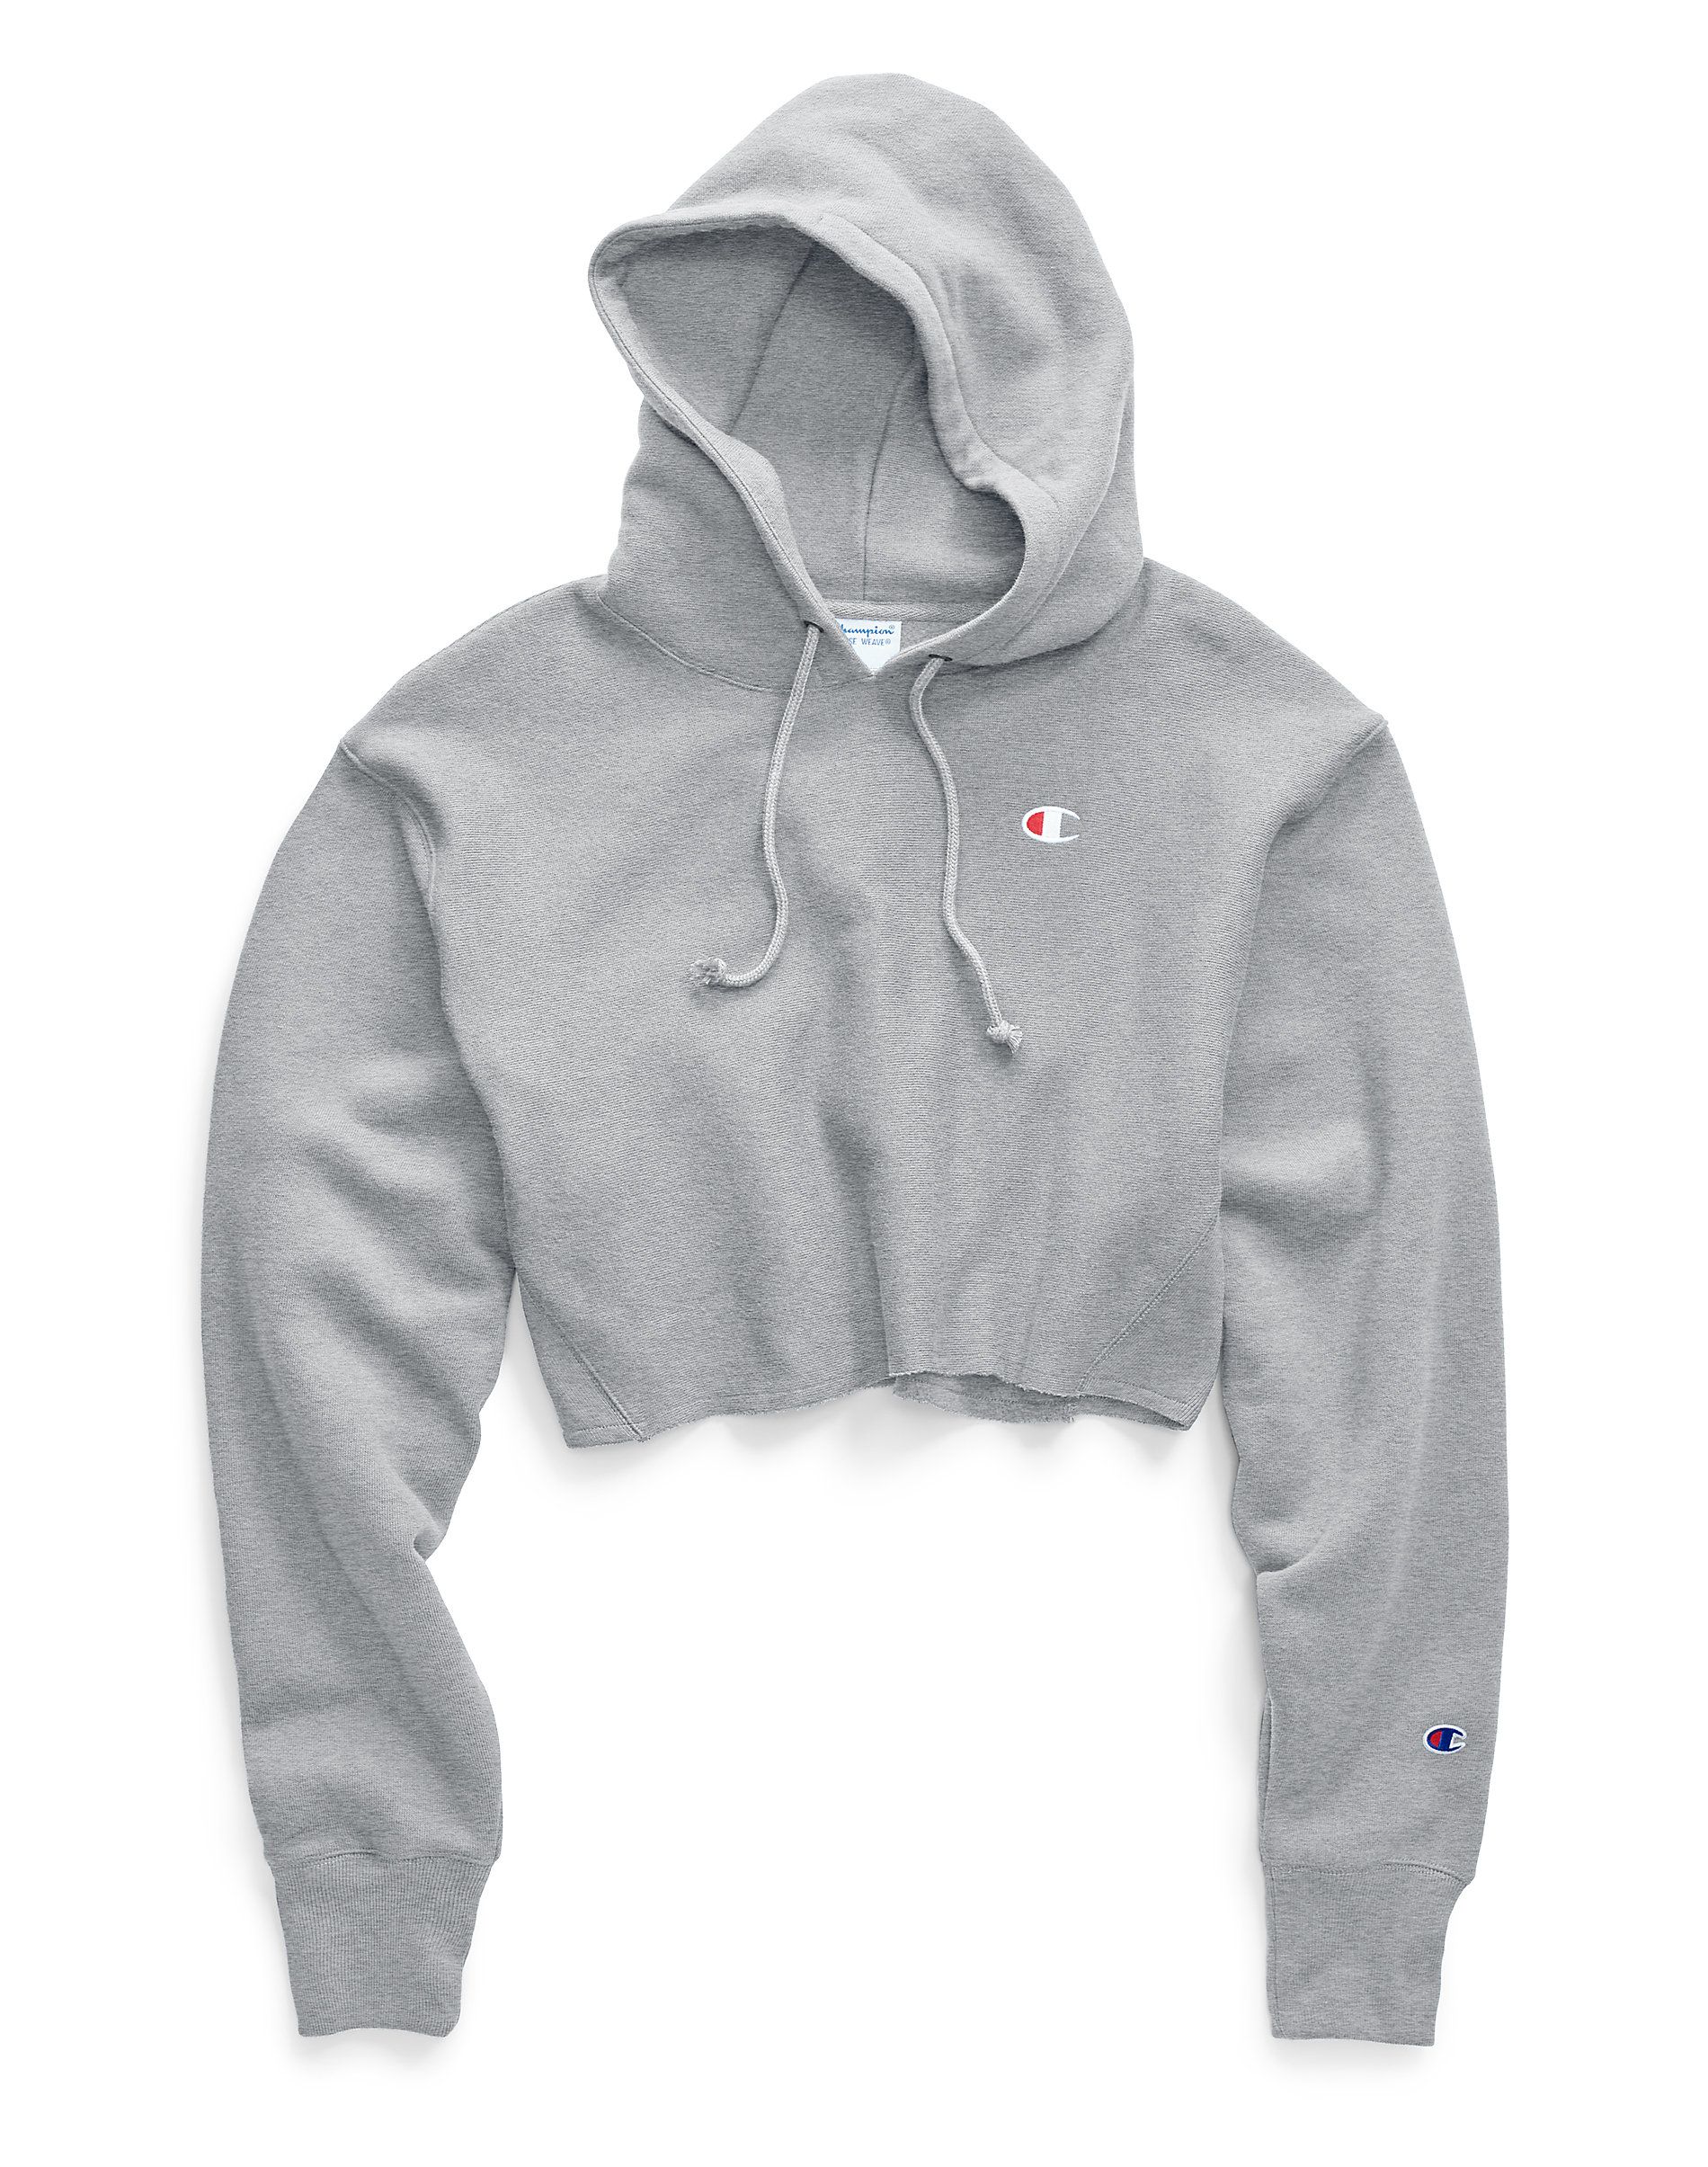 Champion Champion Life Women's Reverse Weave Pullover Hoodie White S from Champion (Hanesbrands Inc.) | People